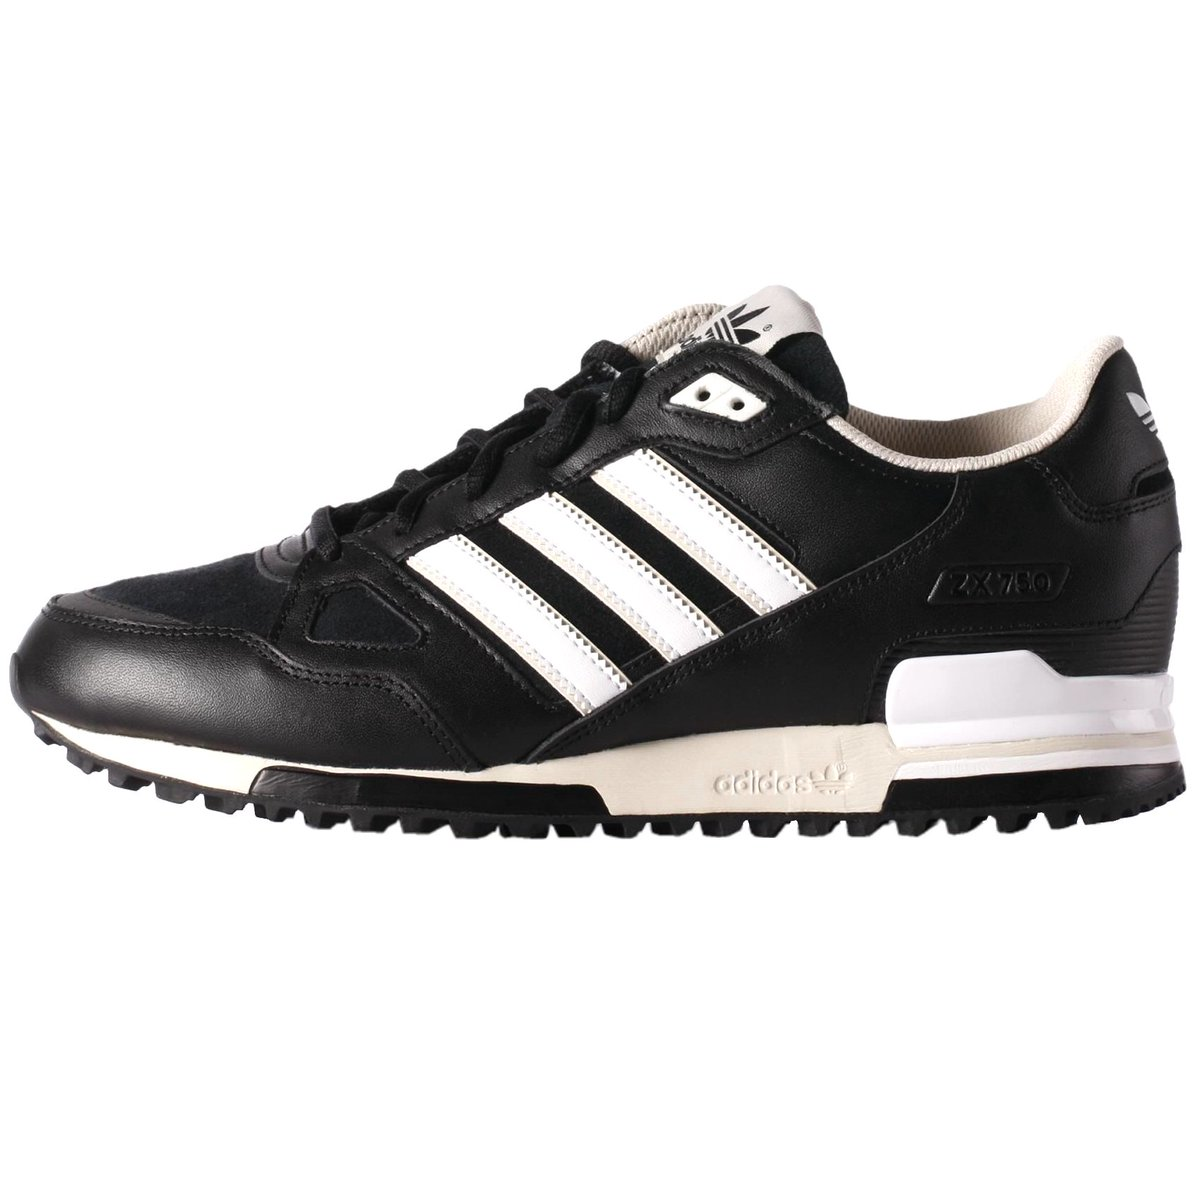 outlet for sale good quality on feet shots of adidas zx 750 herren hashtag on Twitter